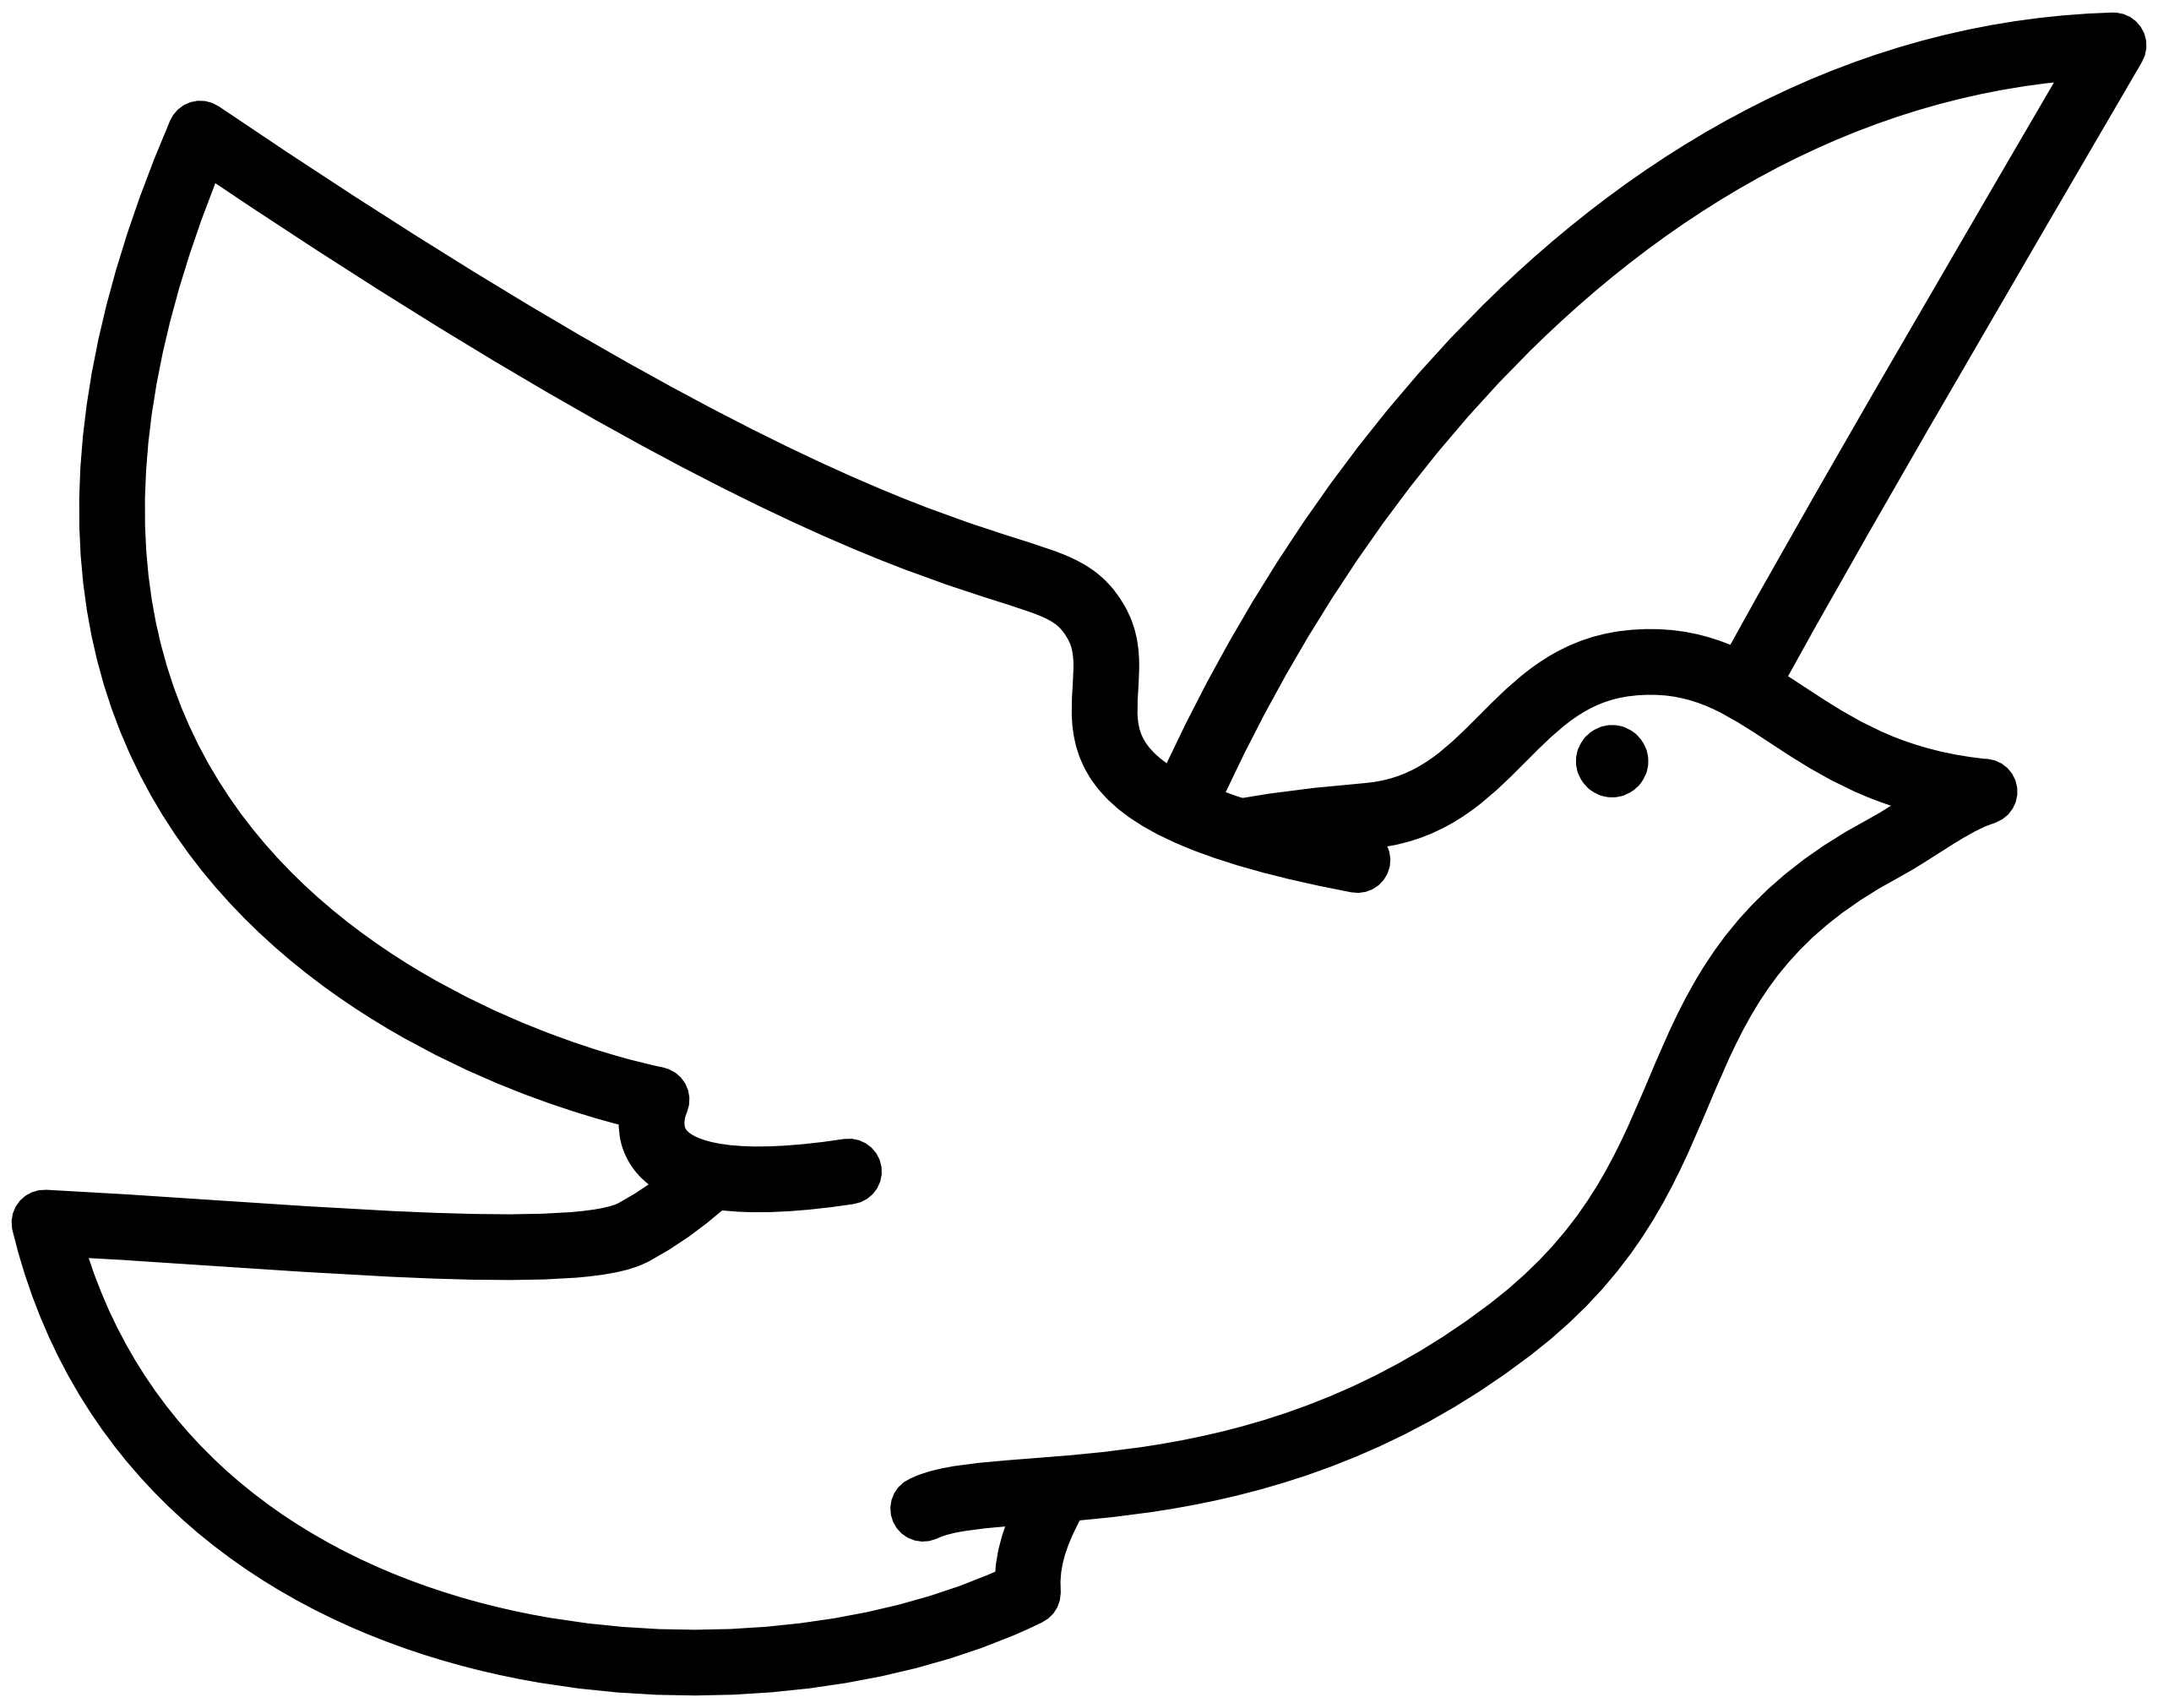 White Dove clipart #12, Download drawings